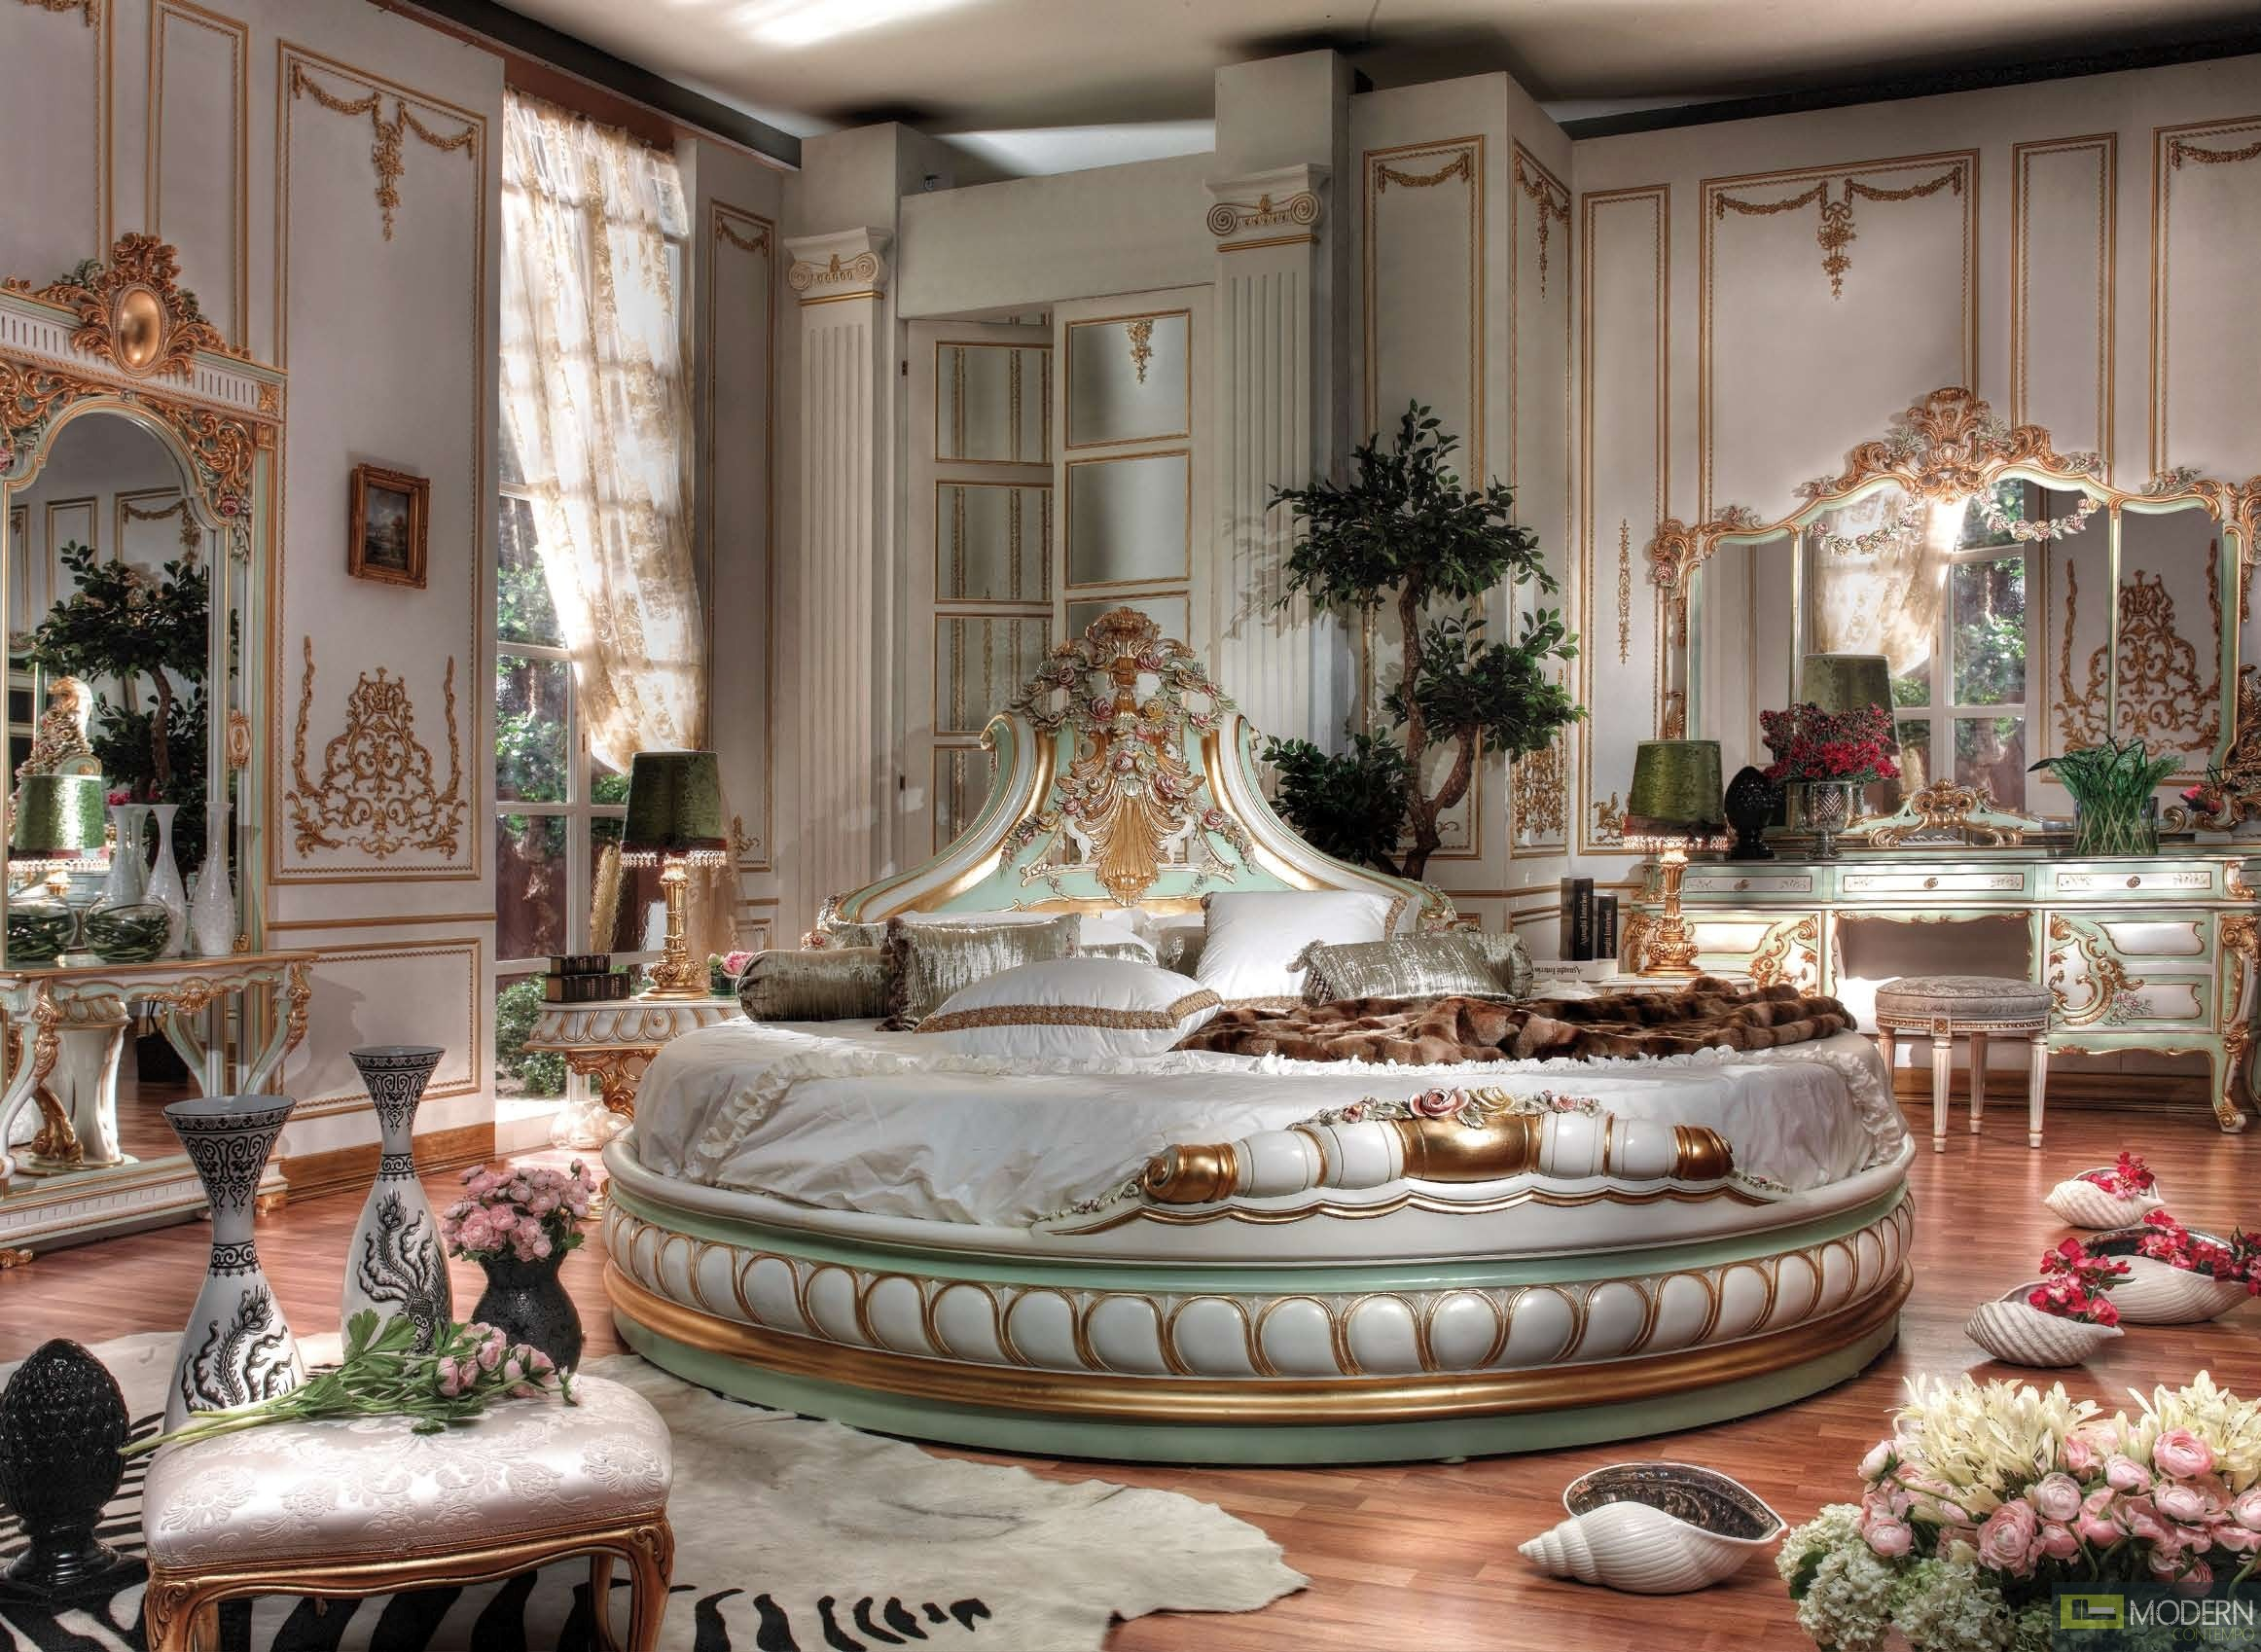 Italian Furniture Bedroom Set. More Views  Classic Italian Luxury Style Royal Baudelaire Collection Bedroom